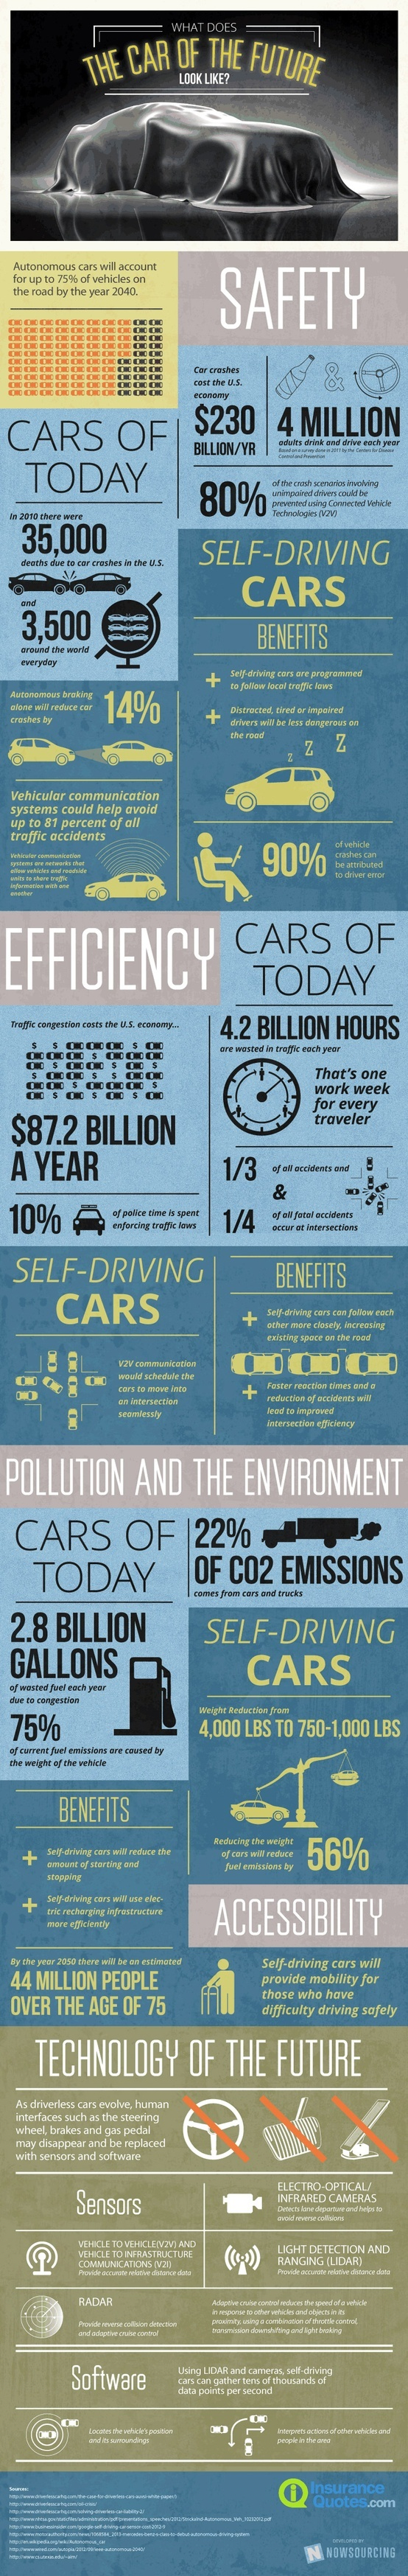 Carhoots | Social Car Review & Marketplace | Blogs | Infographic: Cars Of The Future